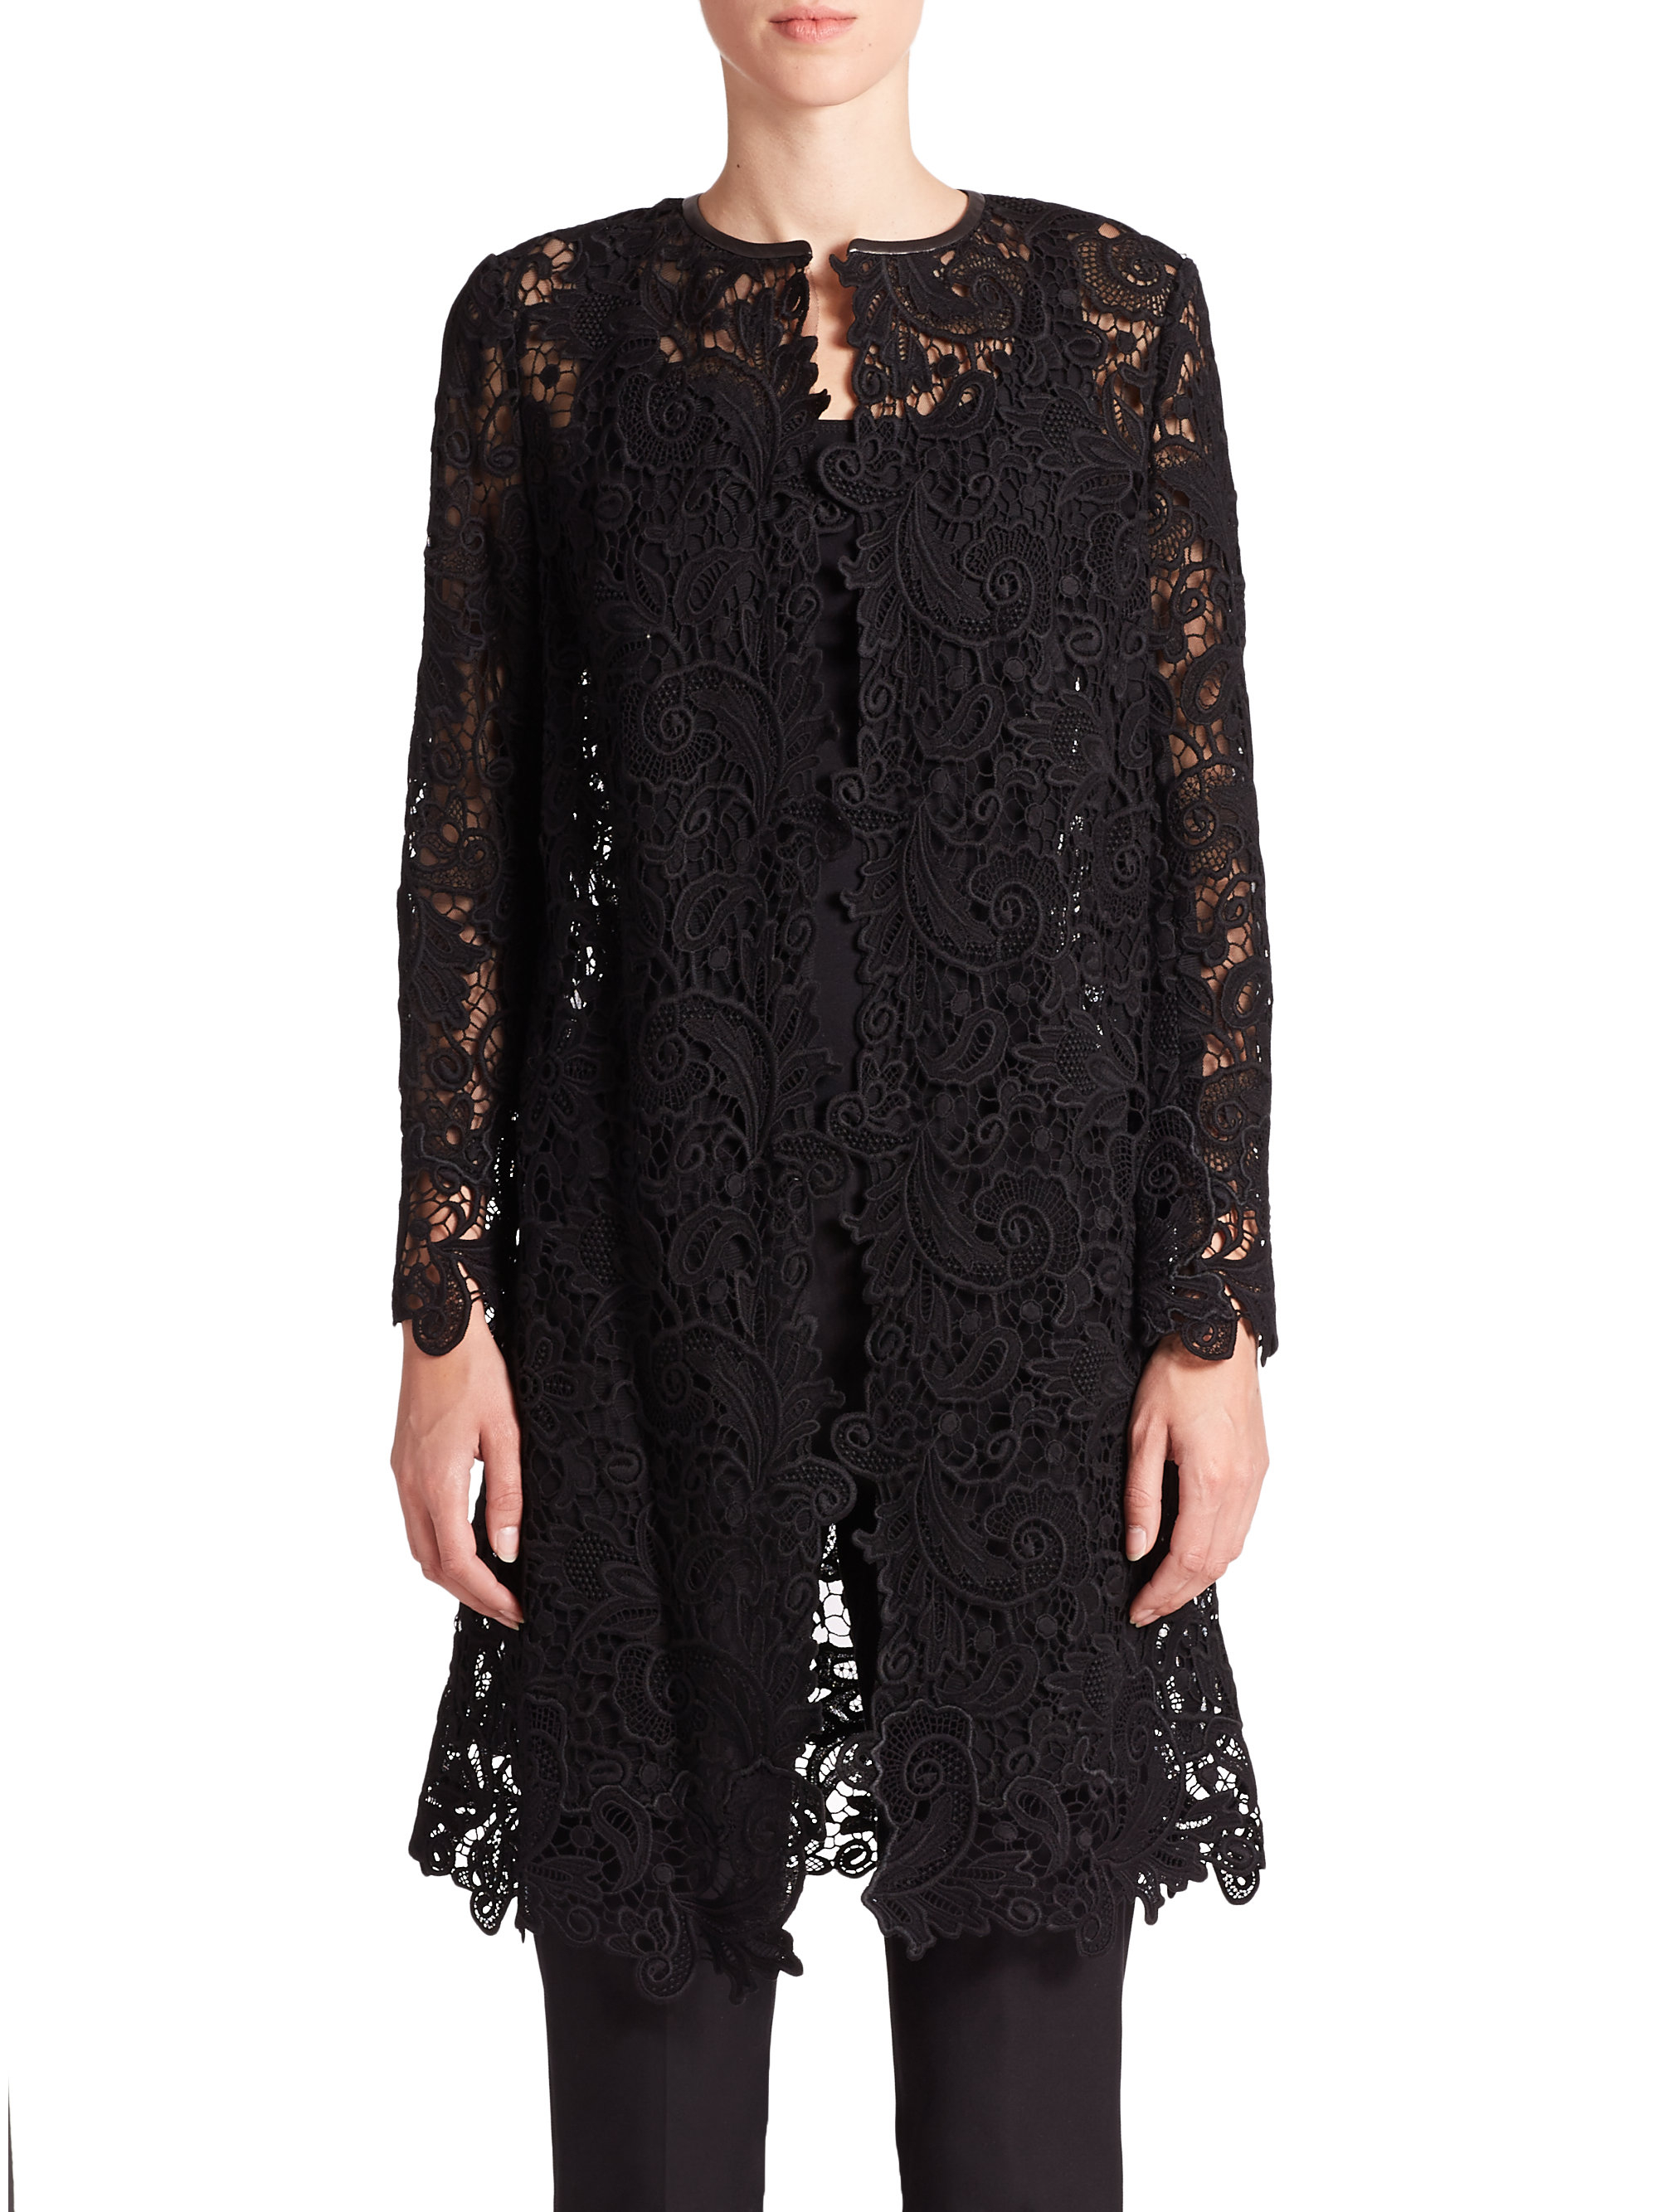 Ralph lauren Black Label Thora Lace Duster in Black